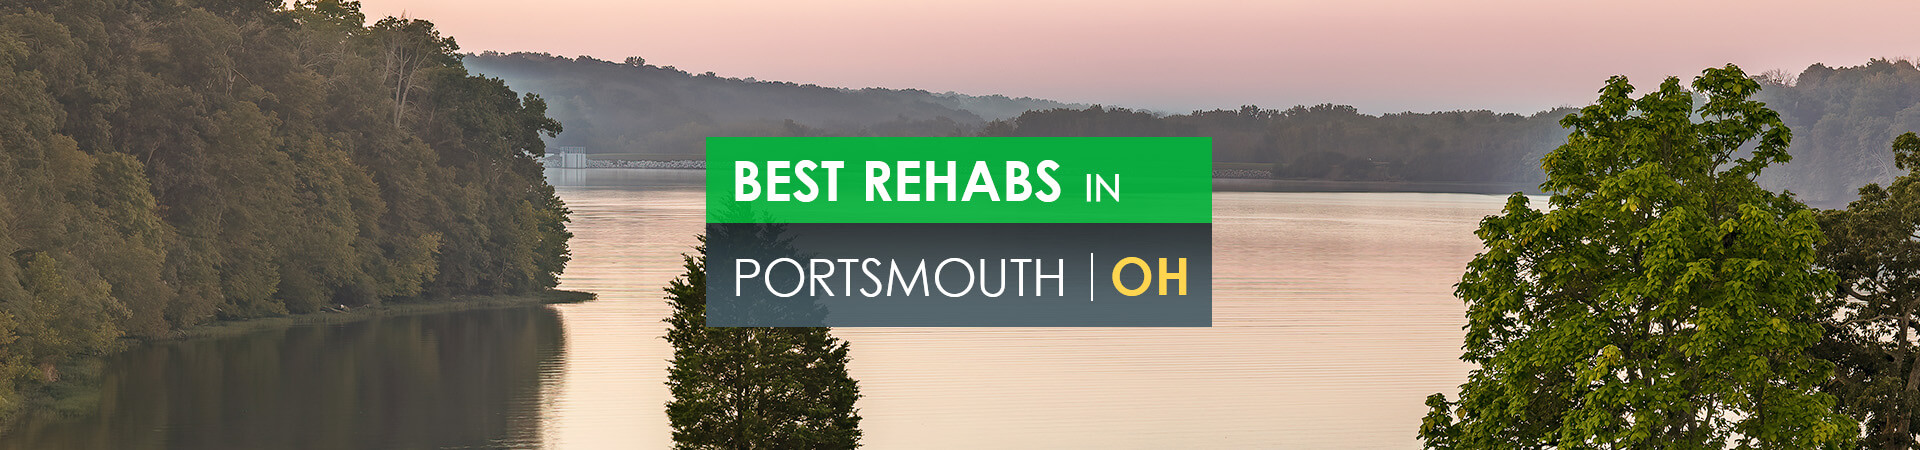 Best rehabs in Portsmouth, OH